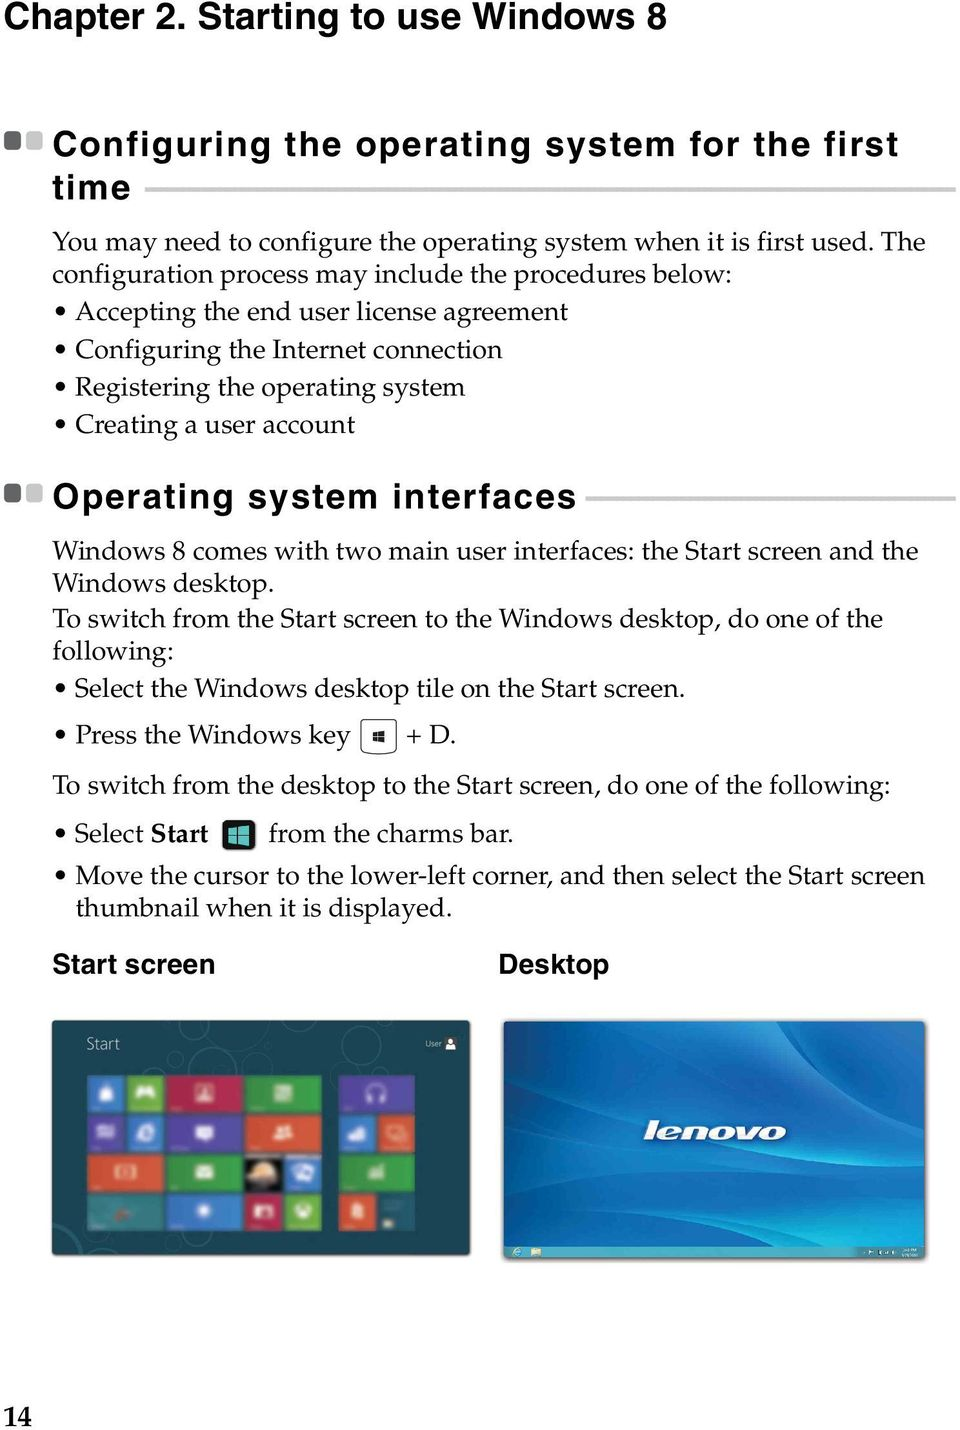 - - - - - - - - - - - - - - - - - - - - - - - - - - - - - - - - - - - - - - - - - - - - - - - - - You may need to configure the operating system when it is first used.